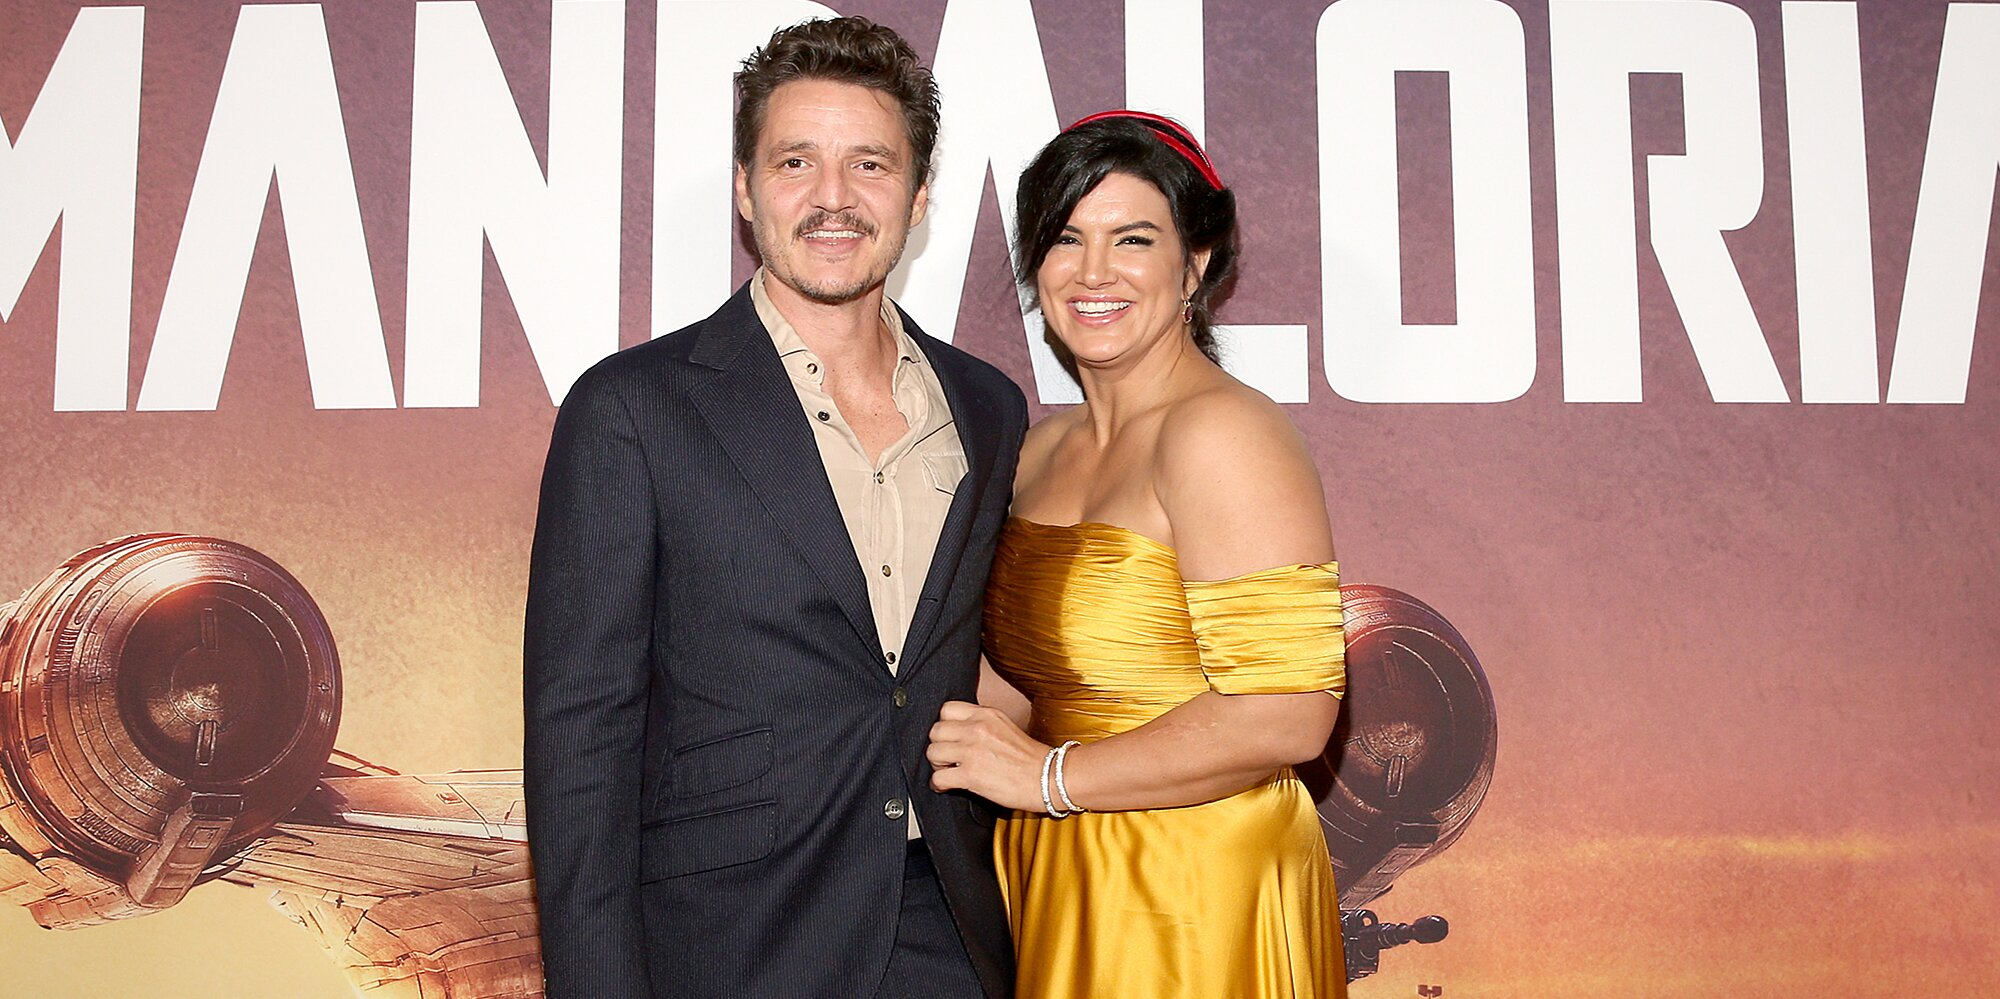 Gina Carano addresses 'The Mandalorian' firing, praises Pedro Pascal in new interview